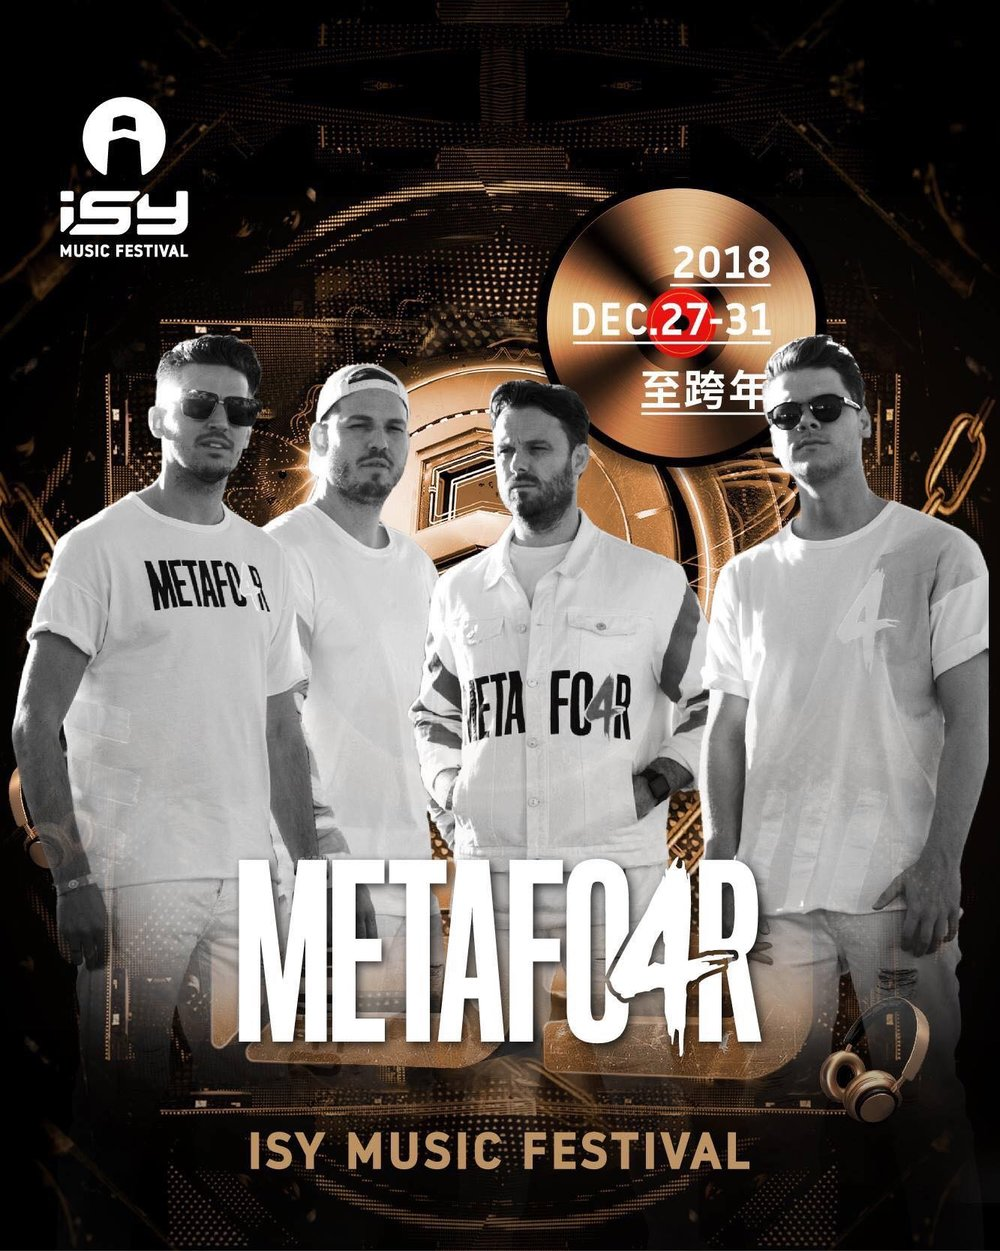 Metafo4r - I think it's pretty likely METAFO4R is one the slots on the mainstage. If you're not familiar with them it's Firebeatz and DubVision's new project. They've played EDC and Tomorrowland.